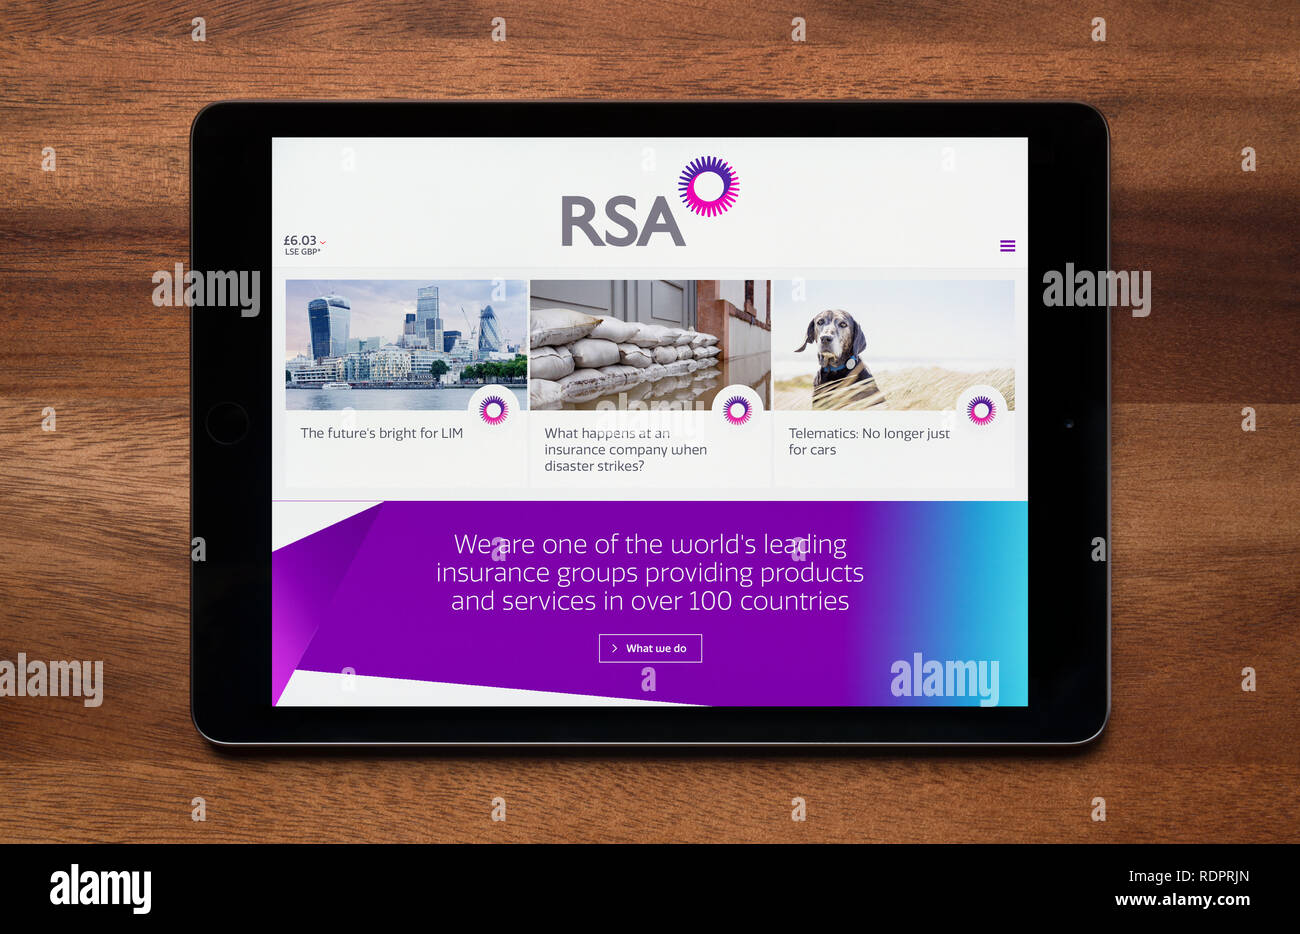 The website of RSA Insurance Group is seen on an iPad tablet, which is resting on a wooden table (Editorial use only). - Stock Image